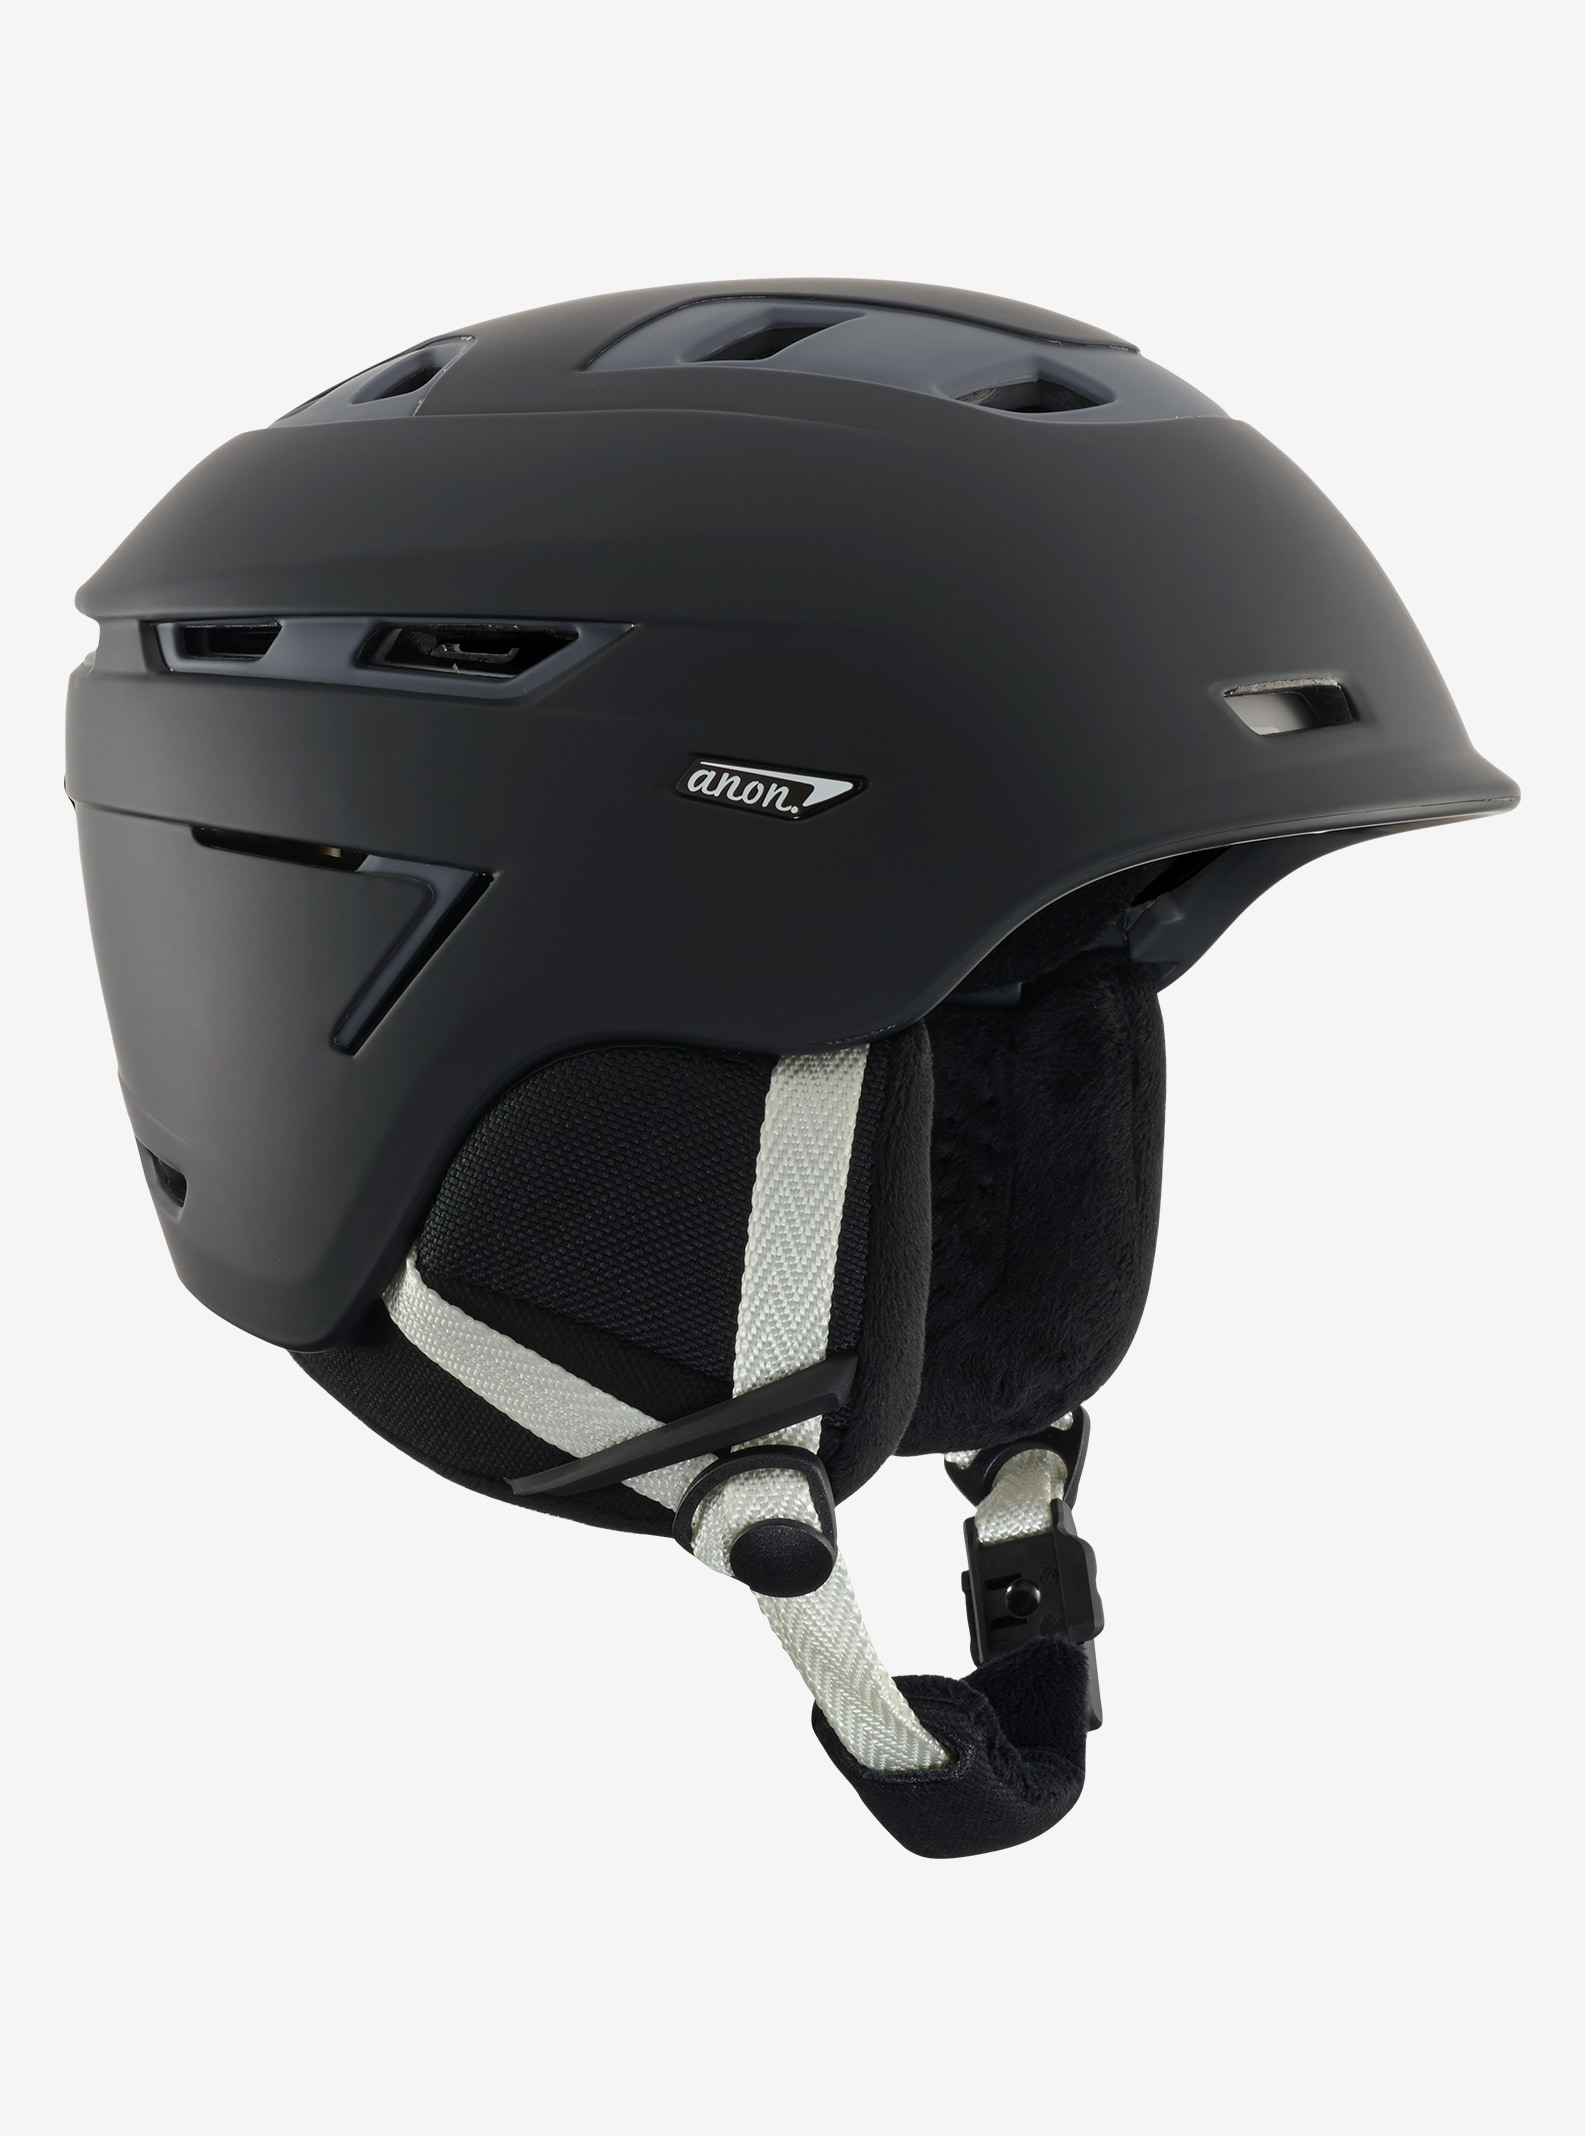 Women's Anon Omega Helmet shown in Black